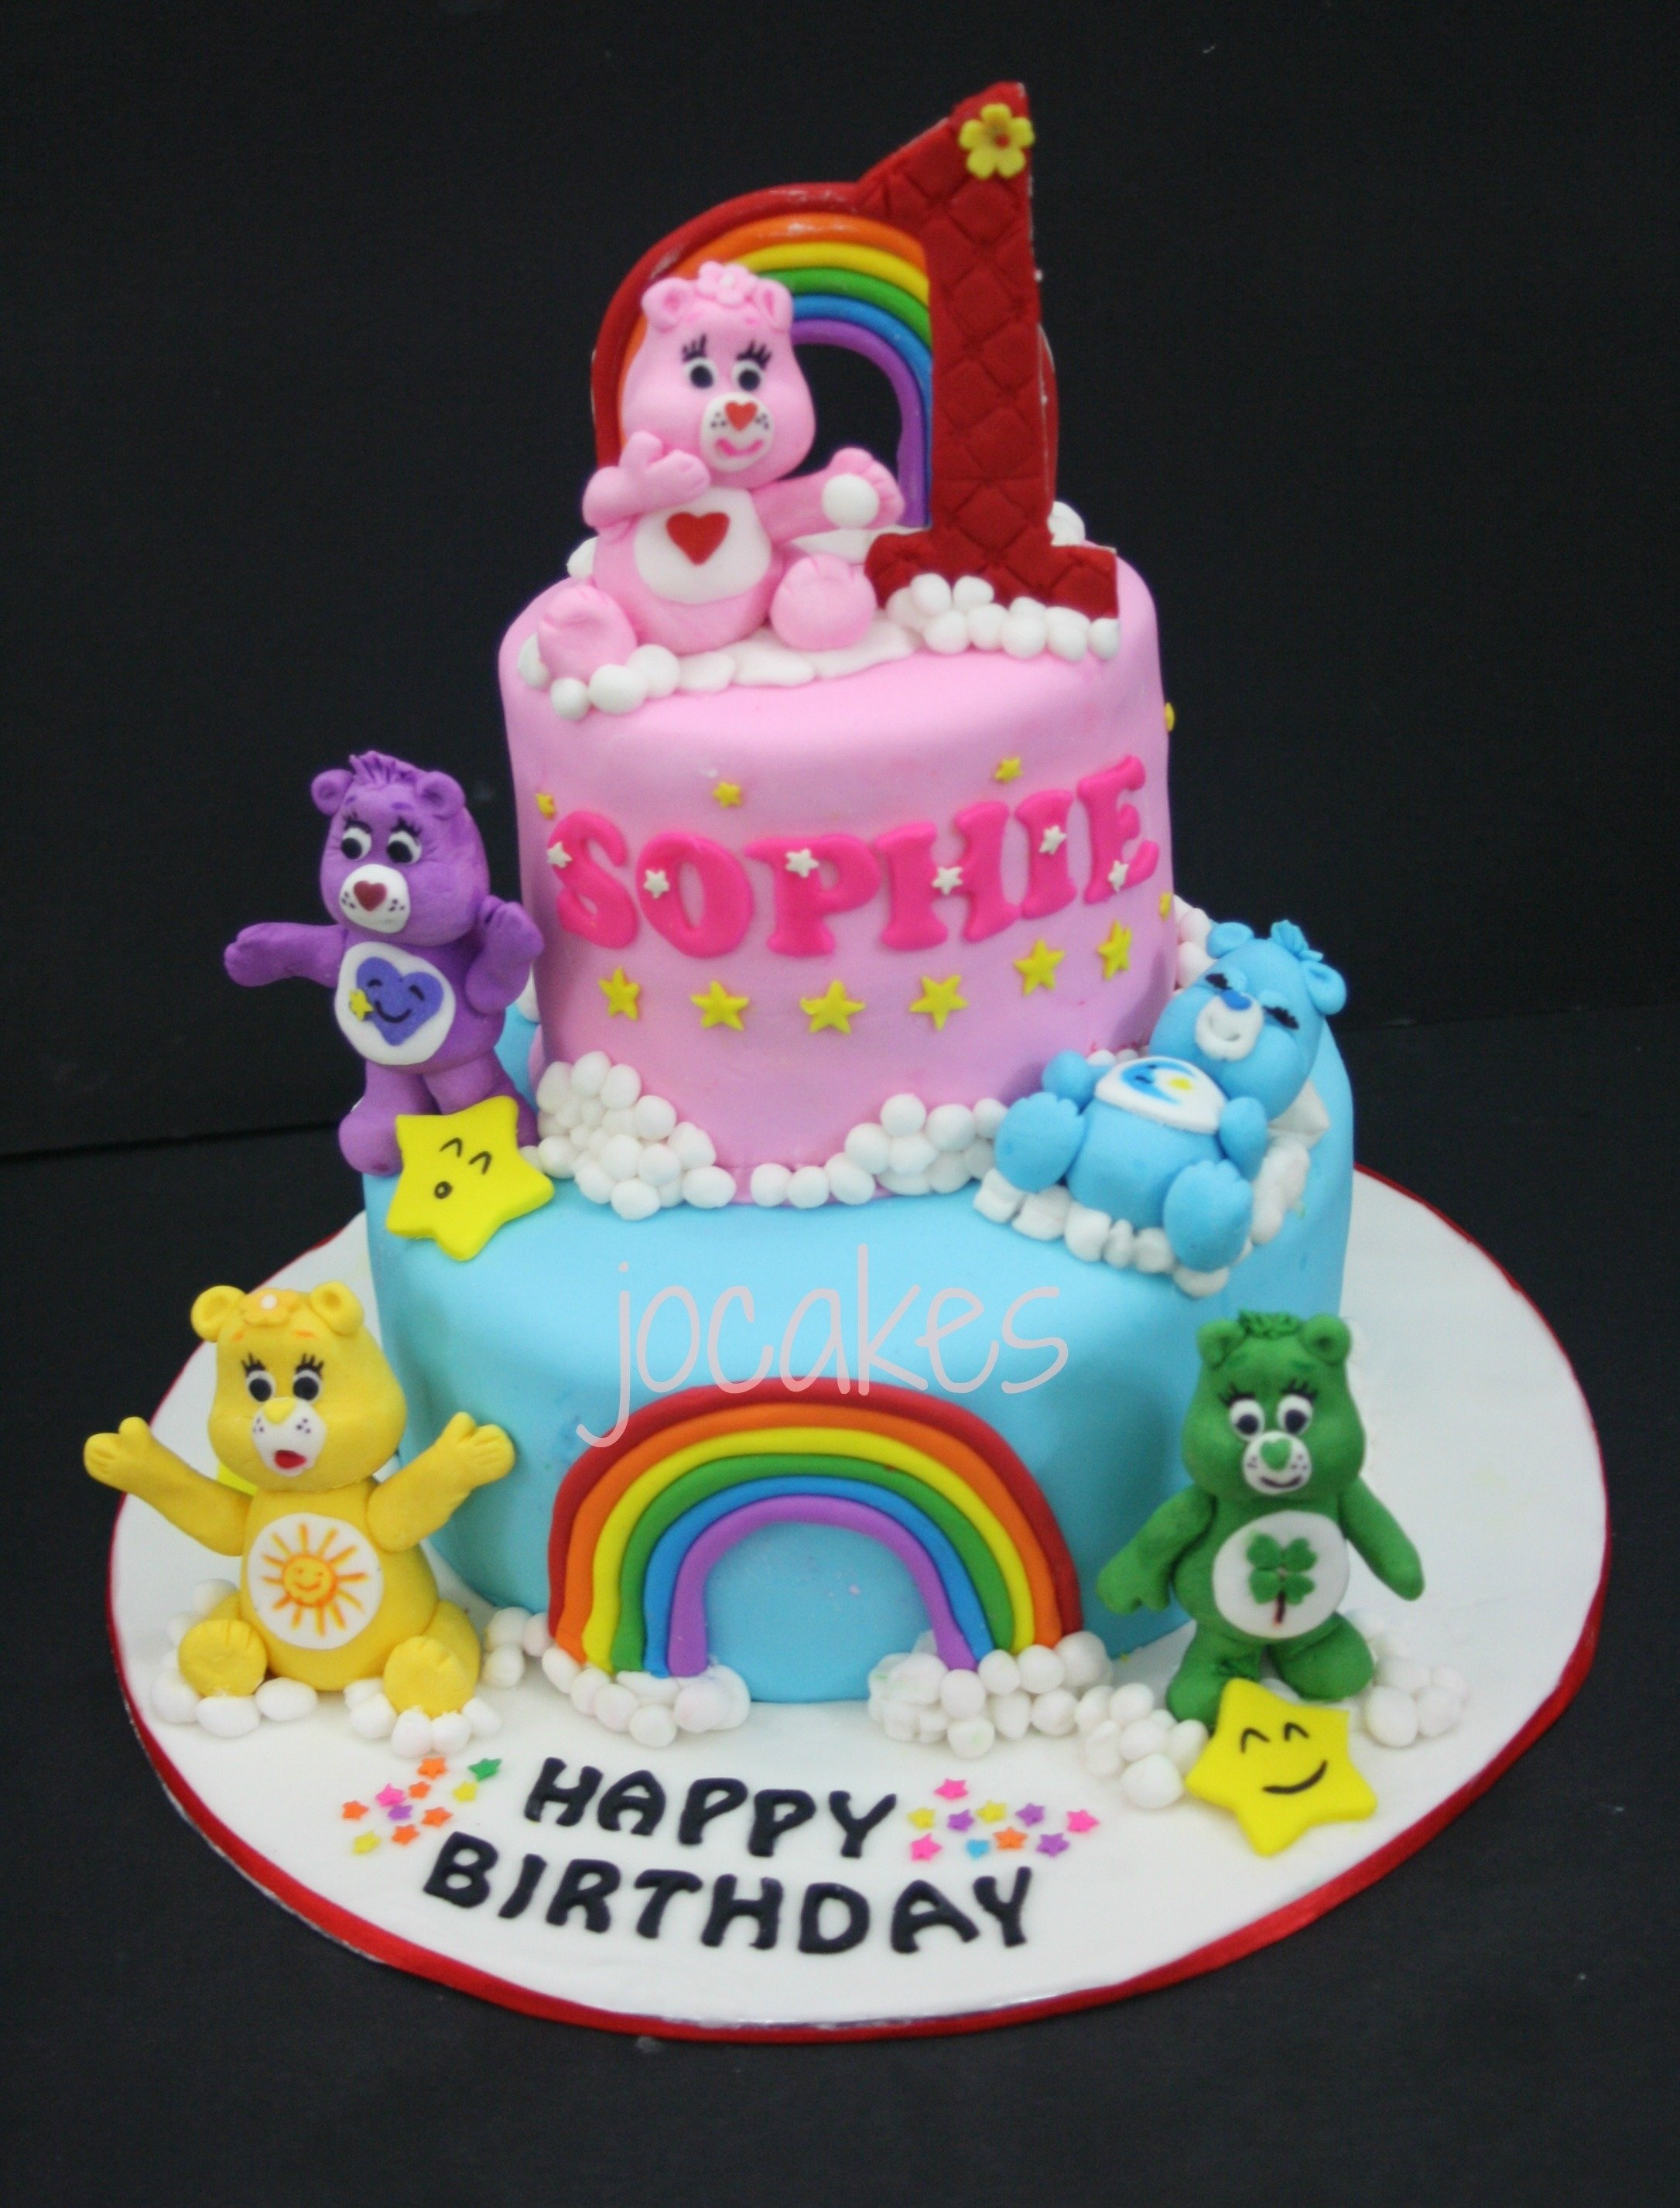 10 Famous 1 Year Old Birthday Cake Ideas birthday cakes images extraordinary birthday cake for 1 year old